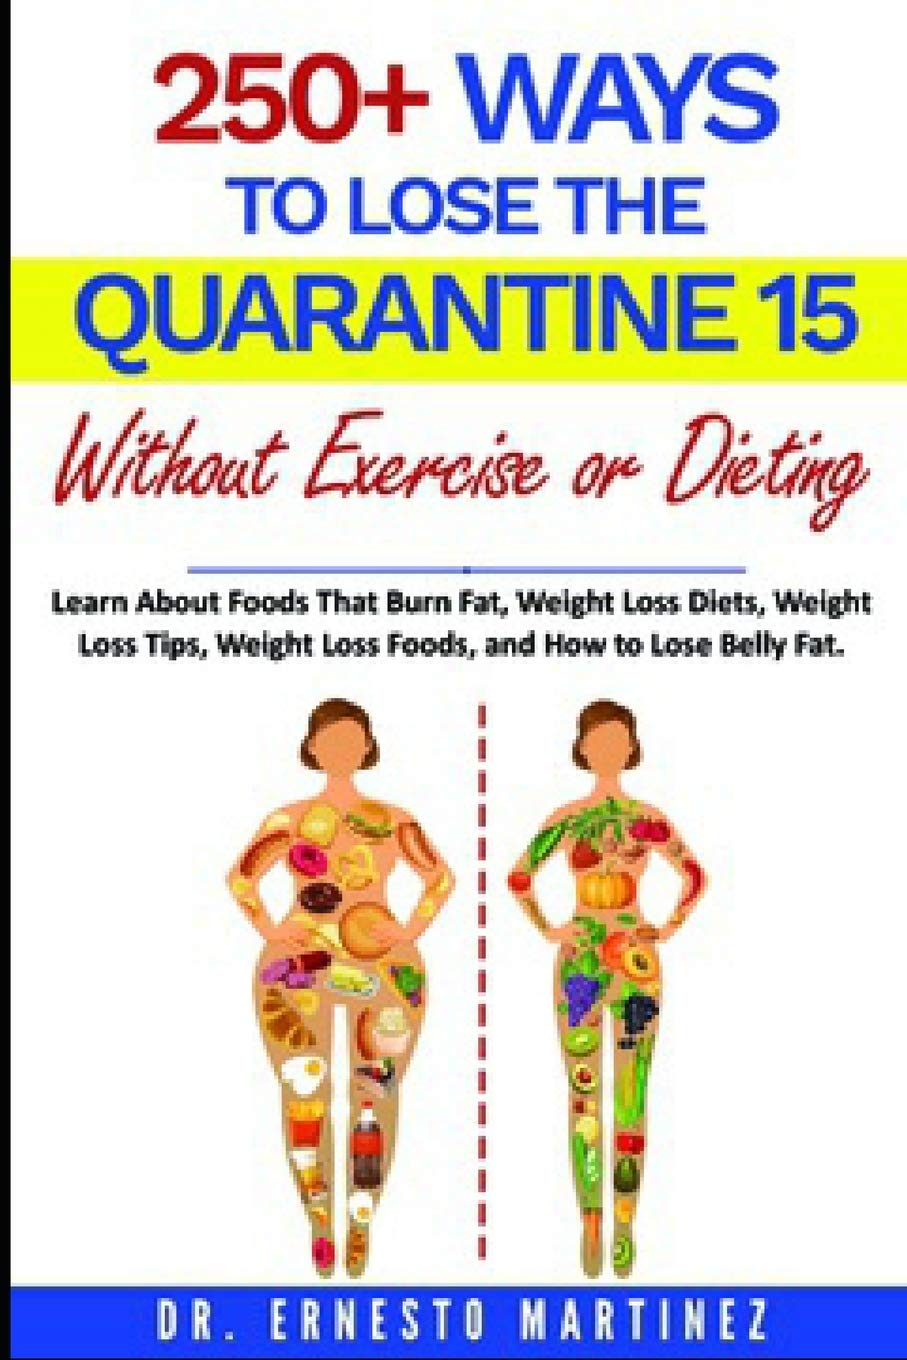 The Quench Diet: Over 250 Ways to Lose the Quarantine 15 Without Exercise or Dieting. How to Lose Weight Without Dieting.: Learn About Foods That Burn ... and How to Lose Belly Fat Characteristics 1